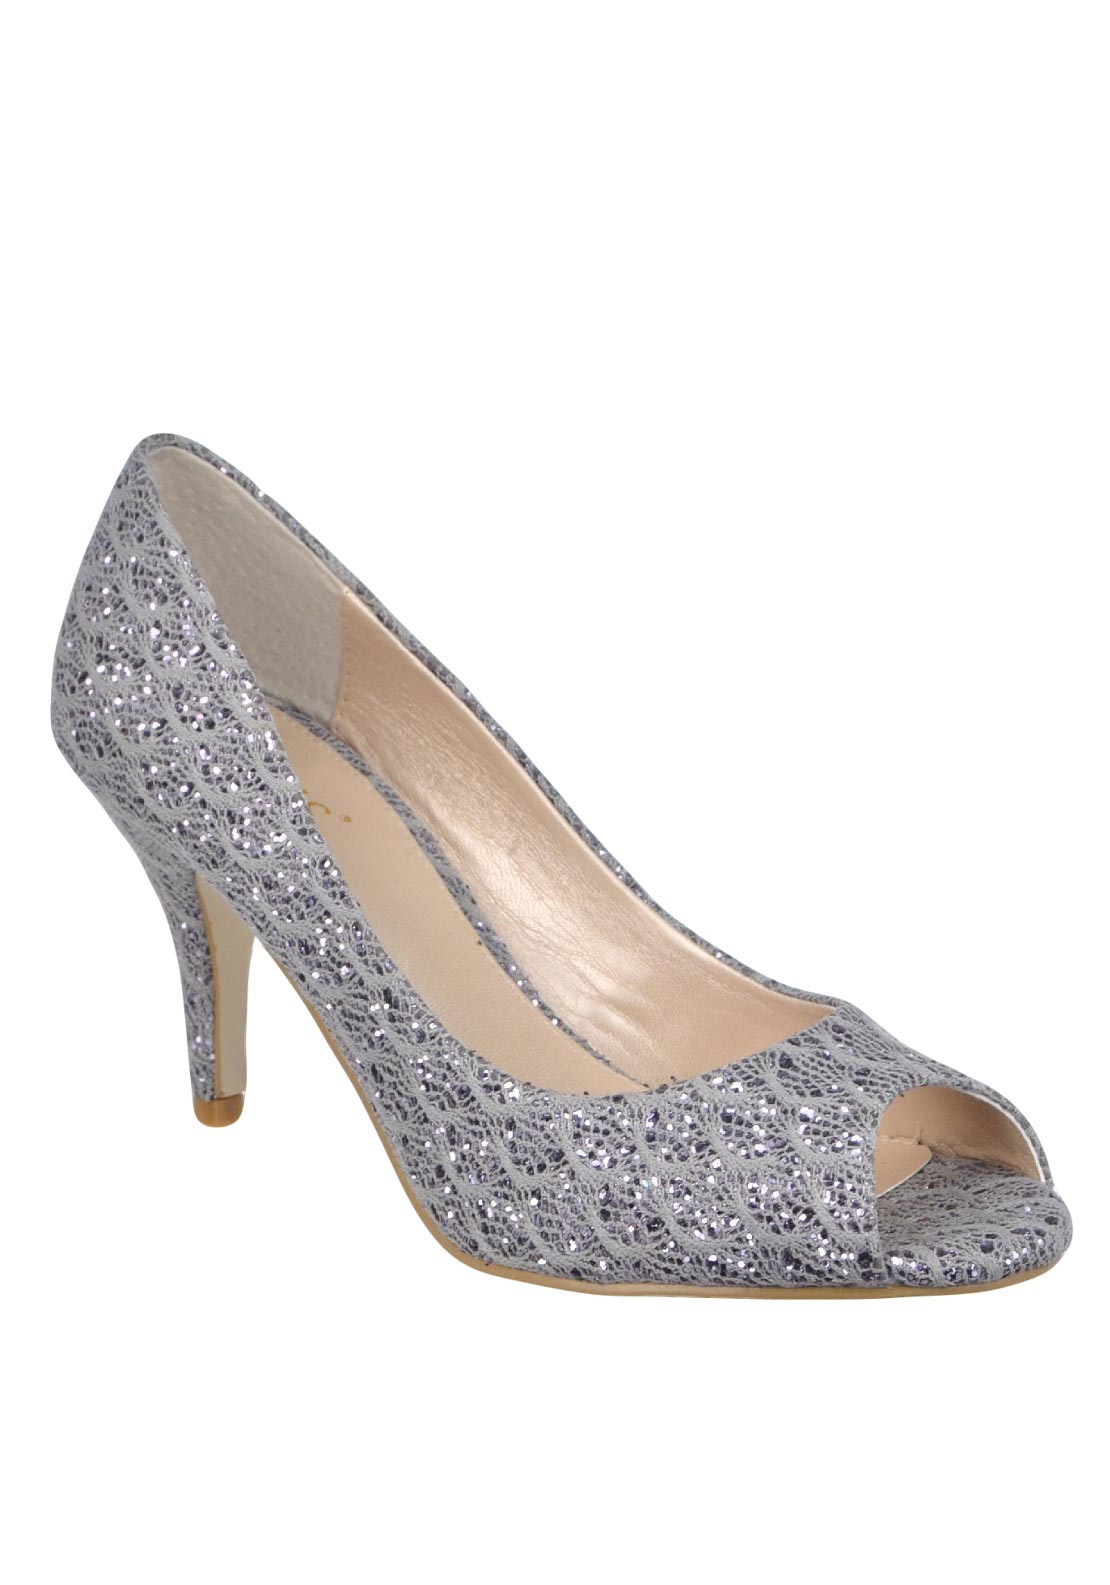 Lotus Eva Glitter Peep Toe Heeled Shoes, Grey